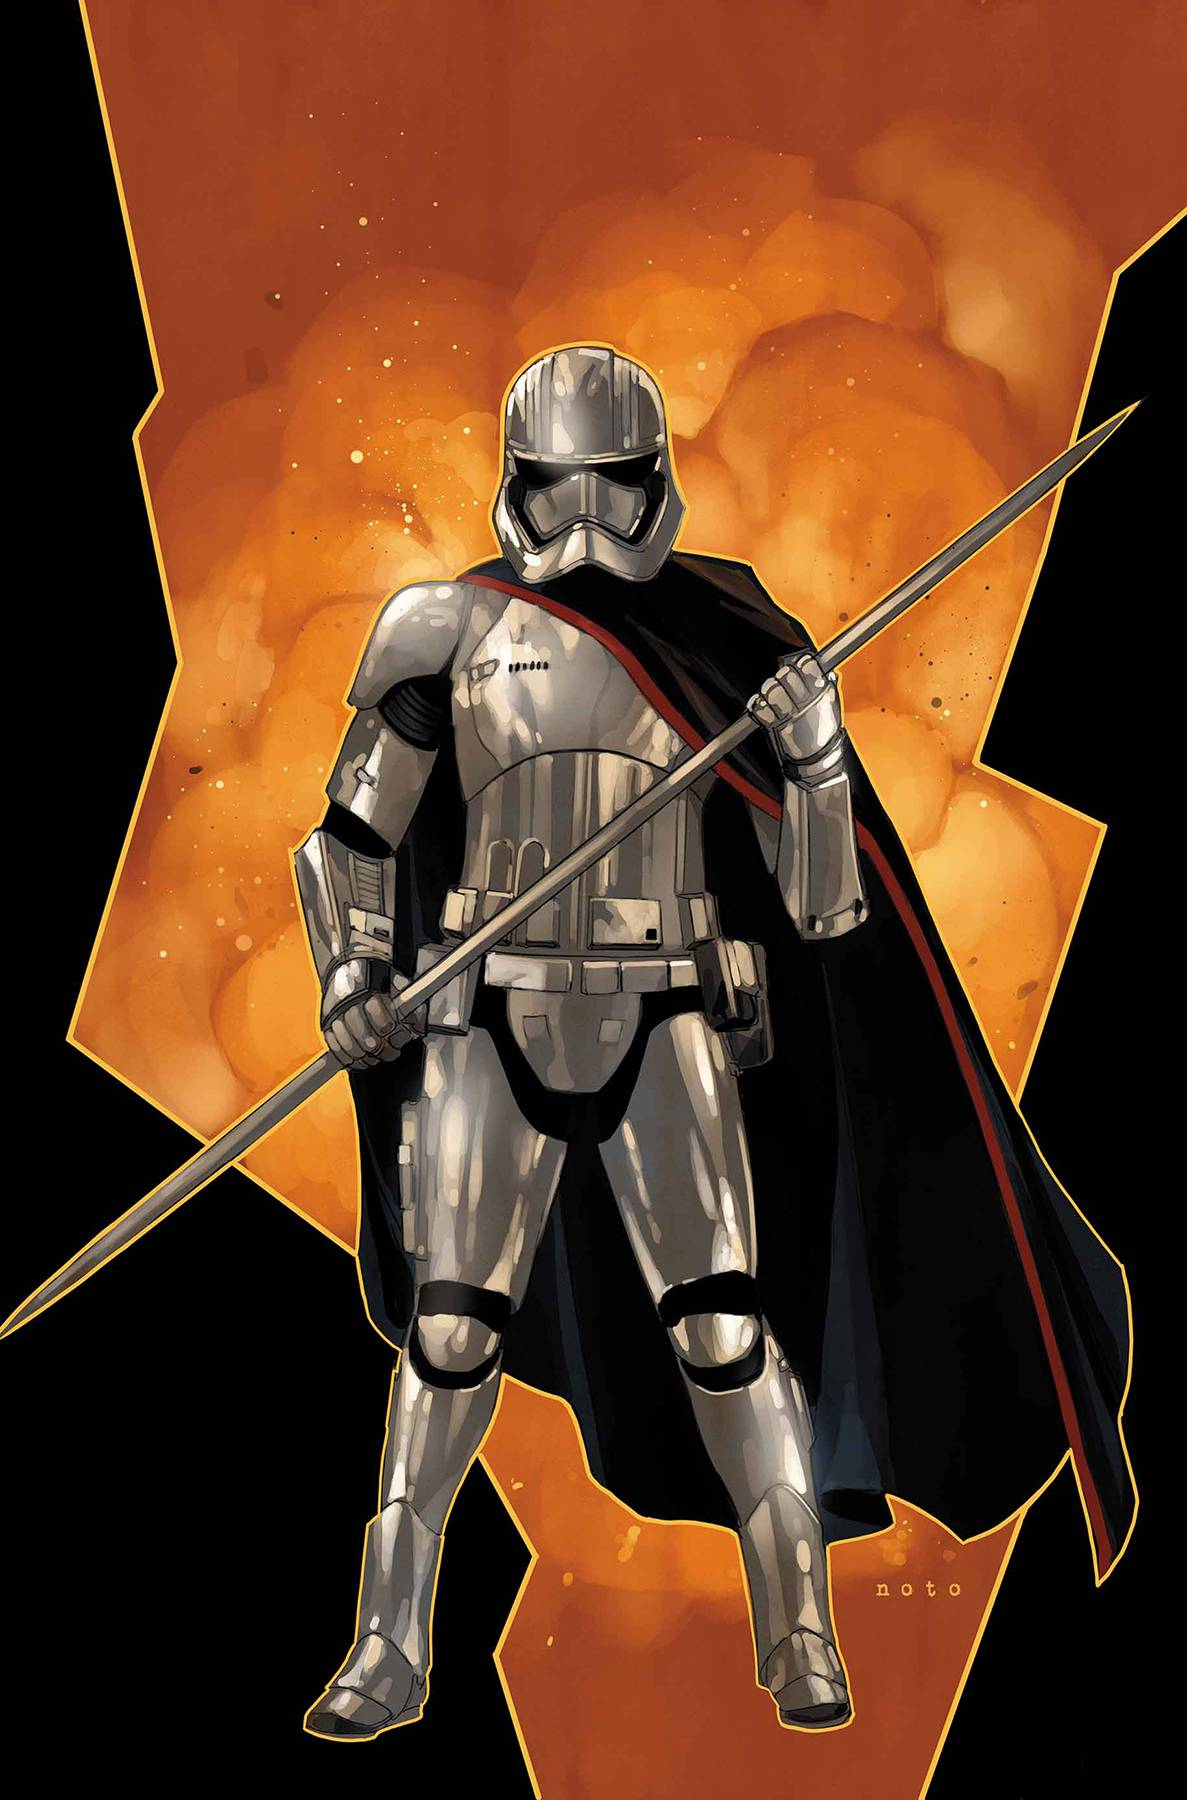 STAR WARS AOR CAPTAIN PHASMA 1.jpg